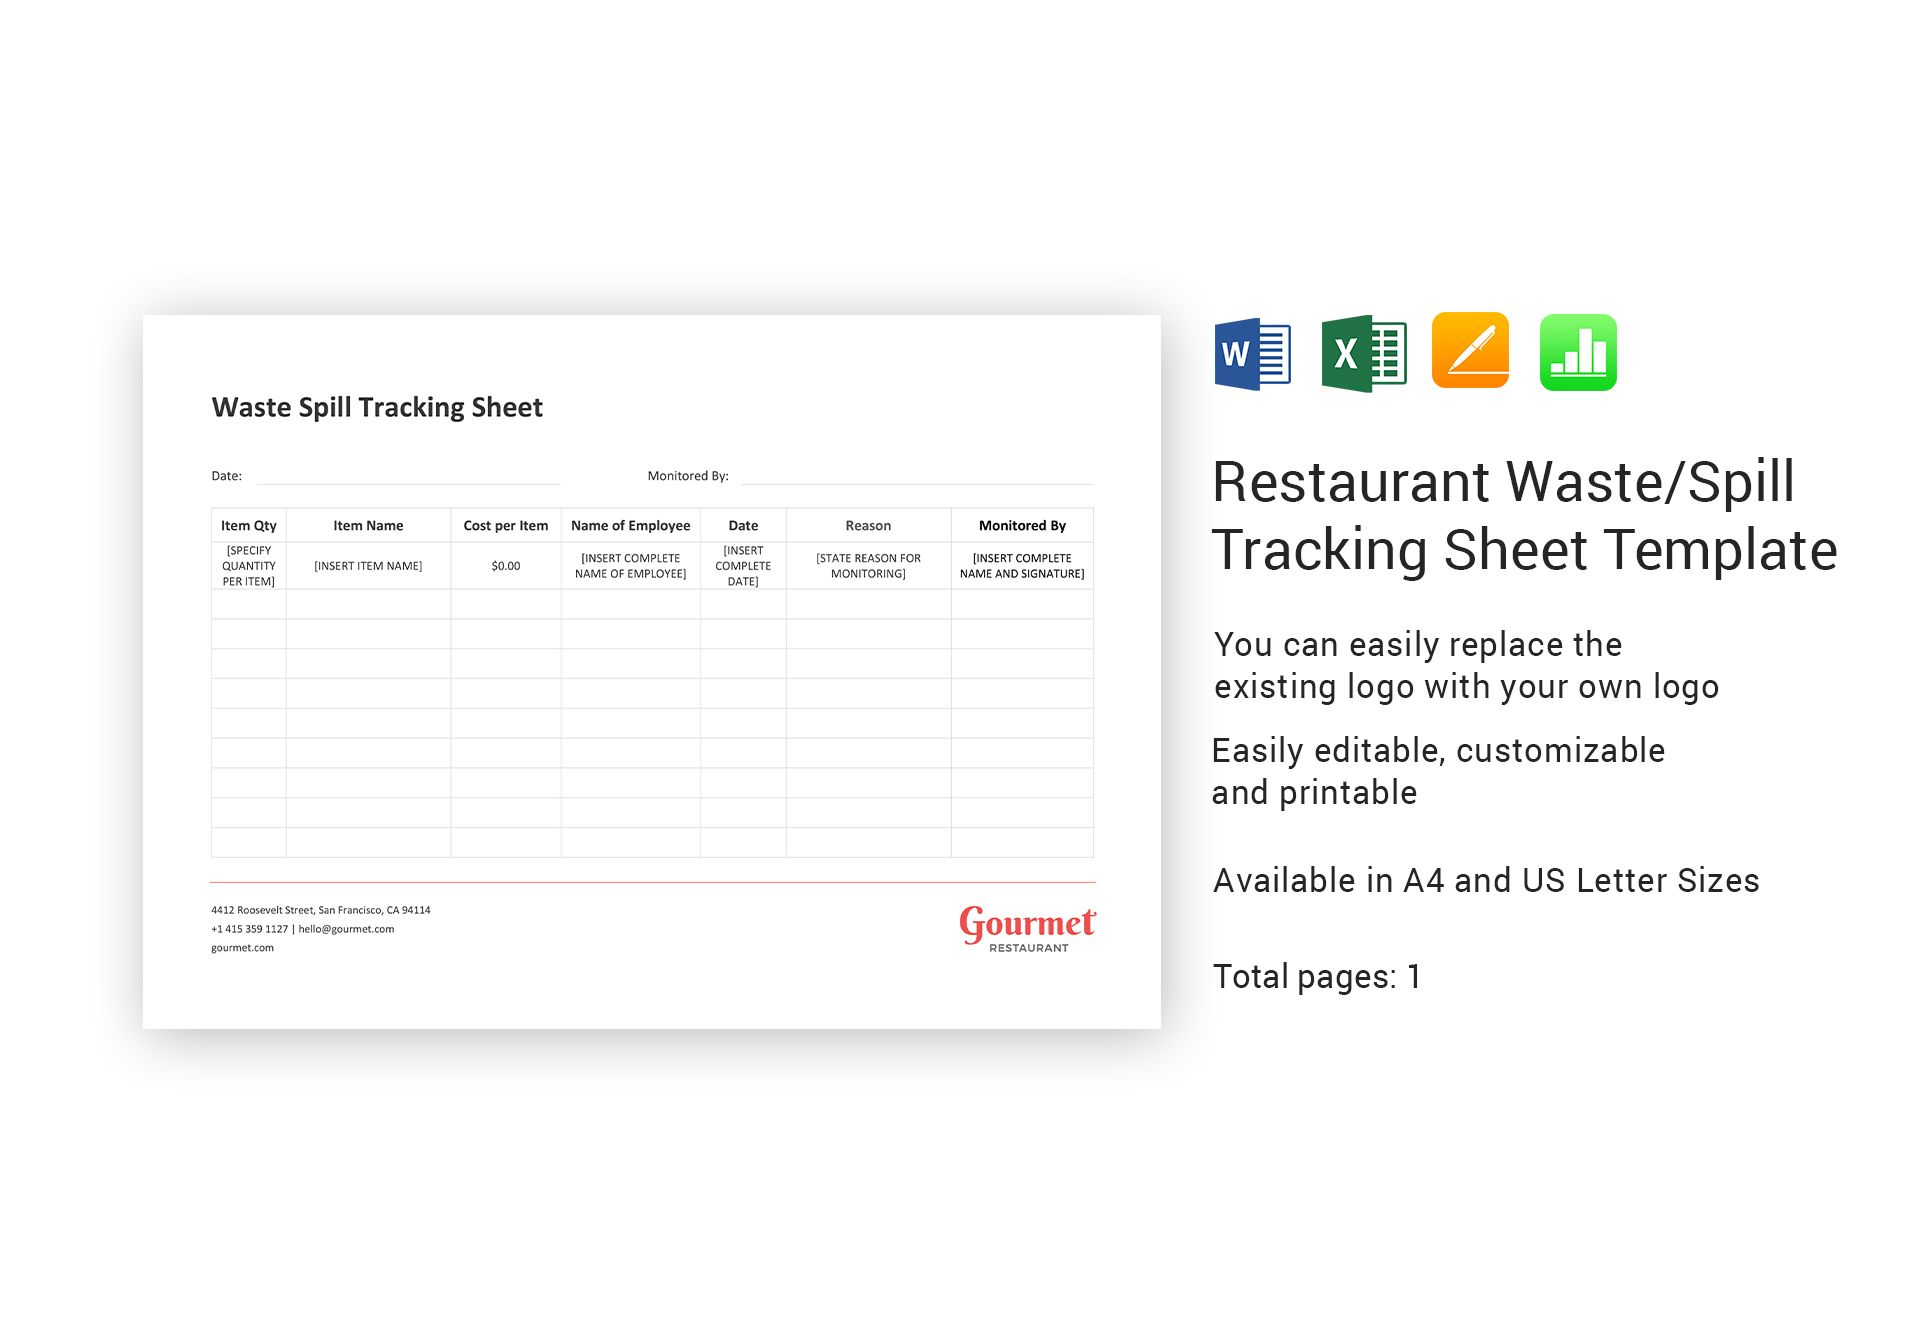 Restaurant Waste Spill Tracking Sheet Template In Word